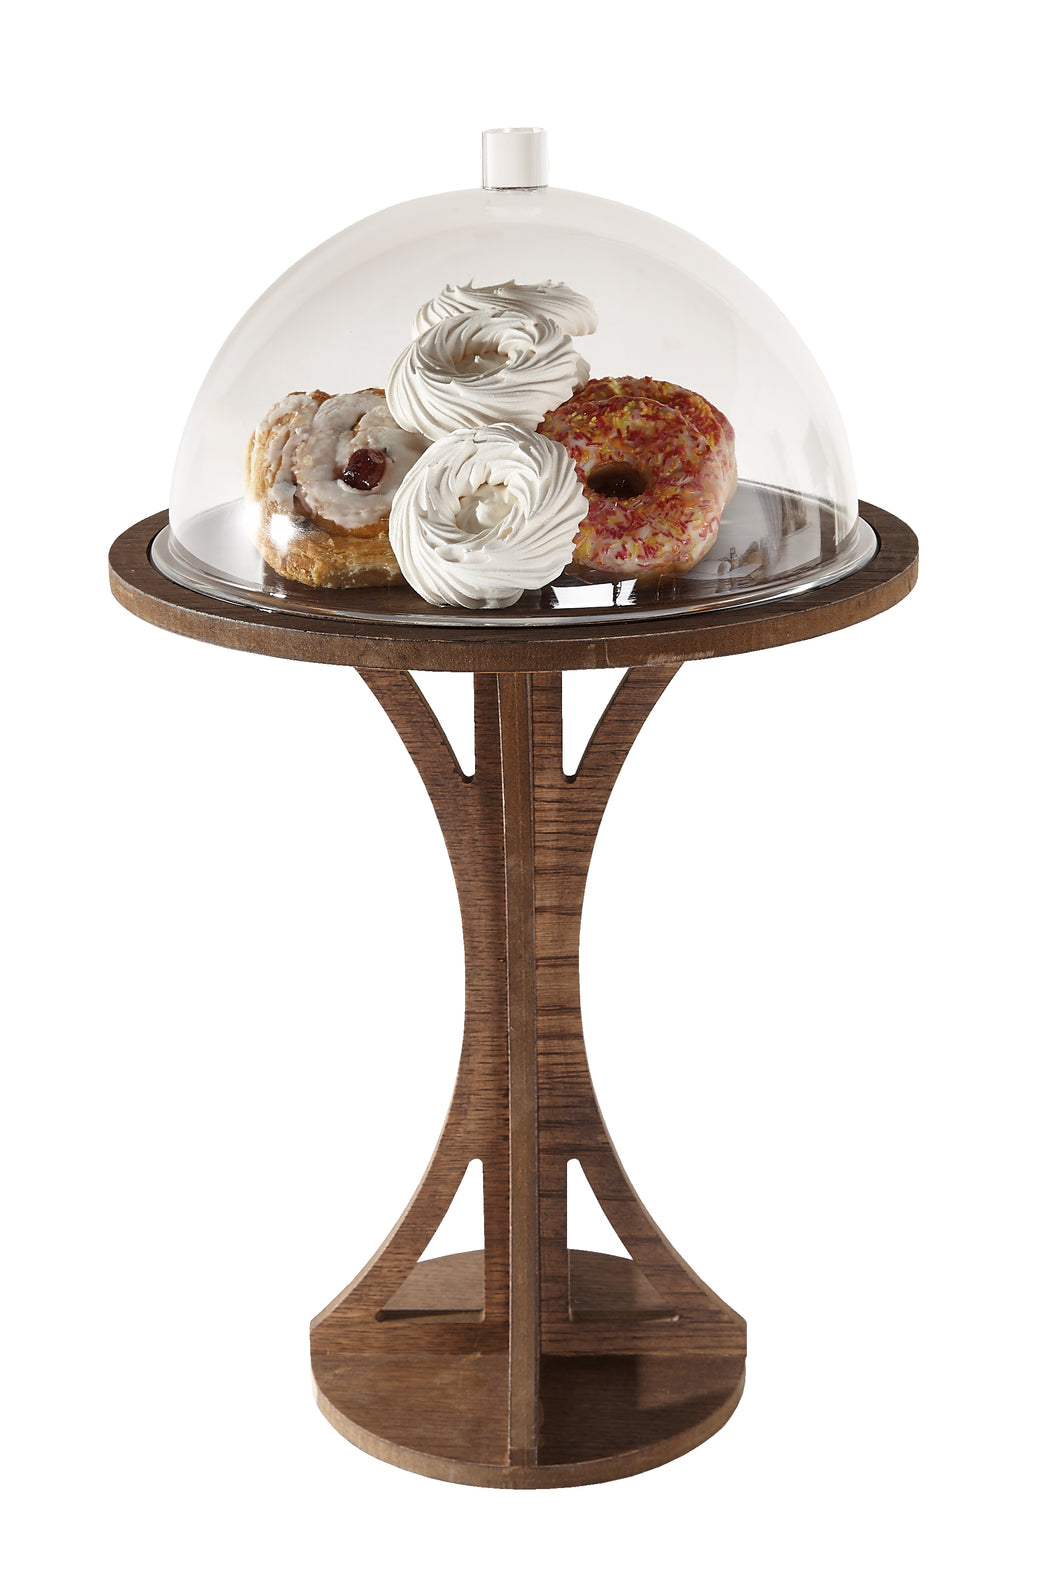 Tall Wooden Regency Cake Stand with dome and cake